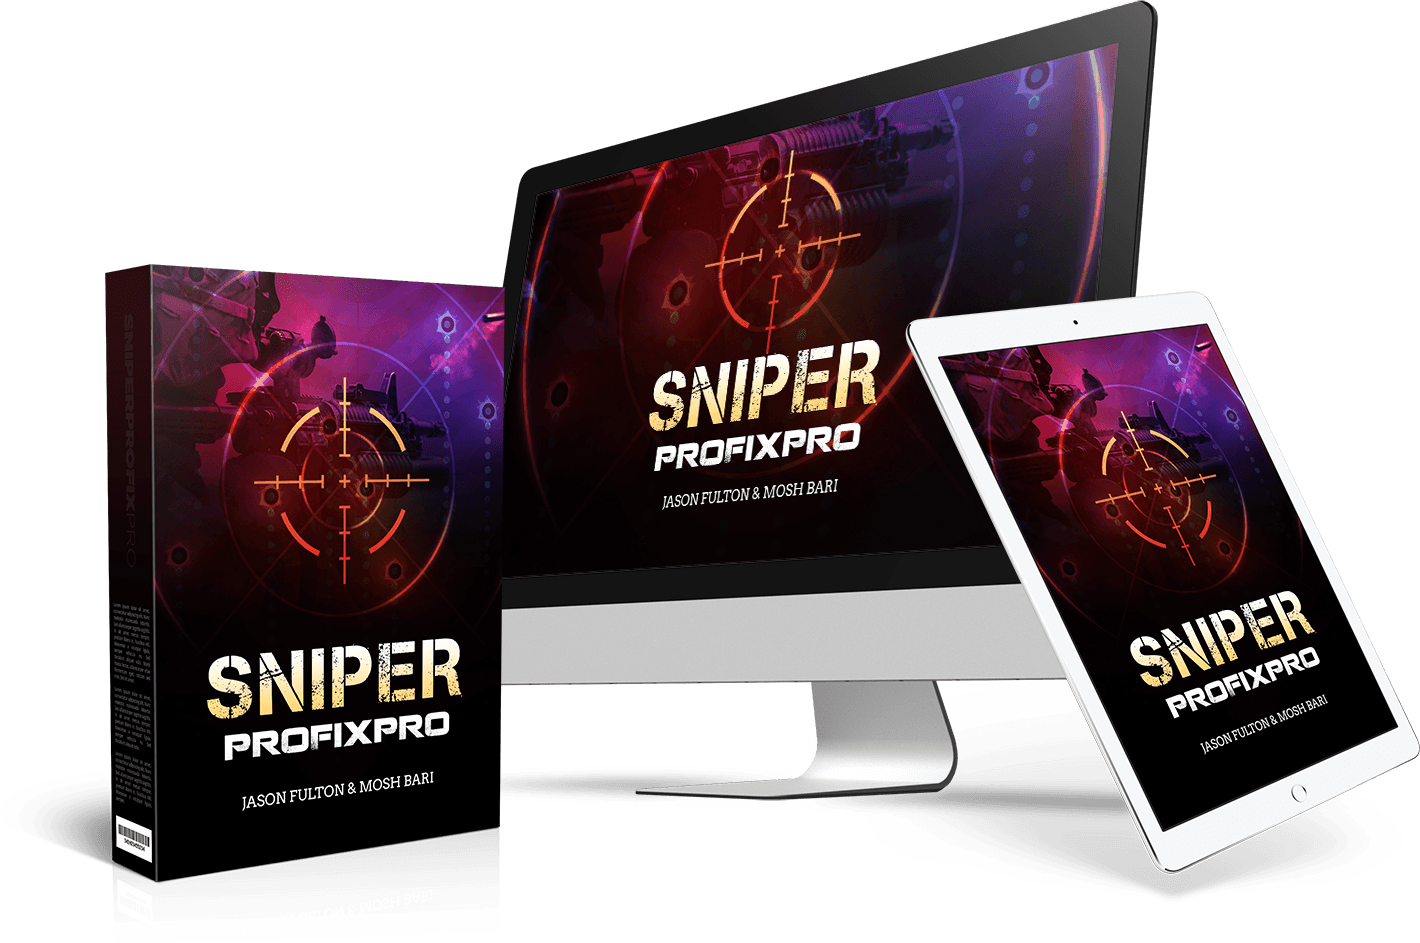 sniperprofixpro-review